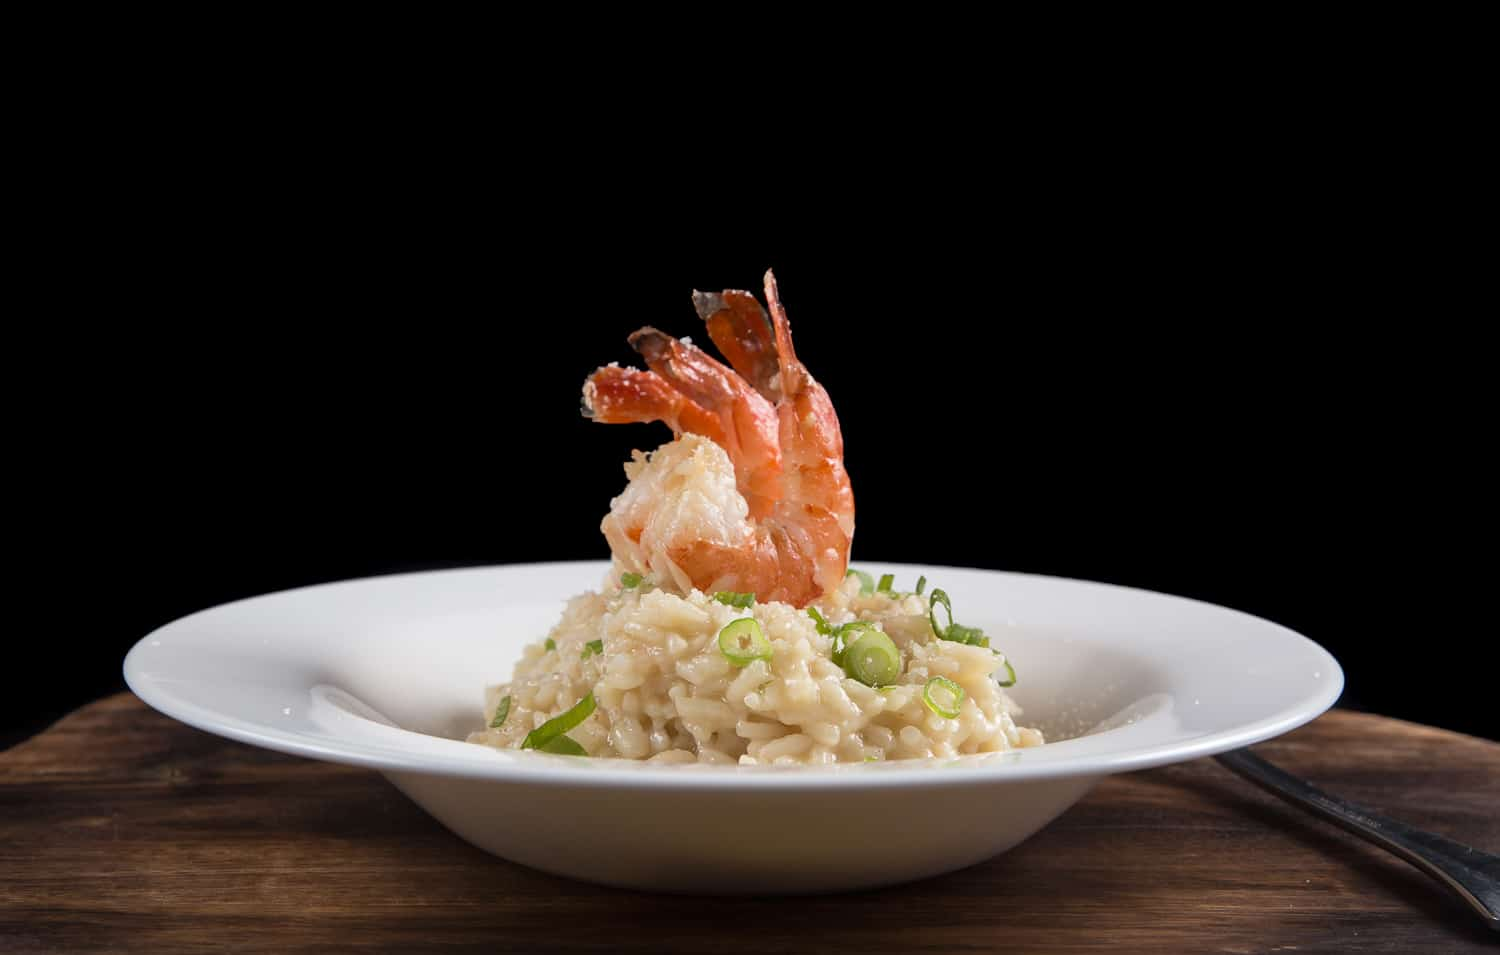 Easy Instant Pot Risotto Recipe: Make this creamy Japanese-Italian Garlic Butter Tiger Prawn Risotto. No more mushy, gluey, or hard risotto! Plus, no need to tend the pot or stir it often.